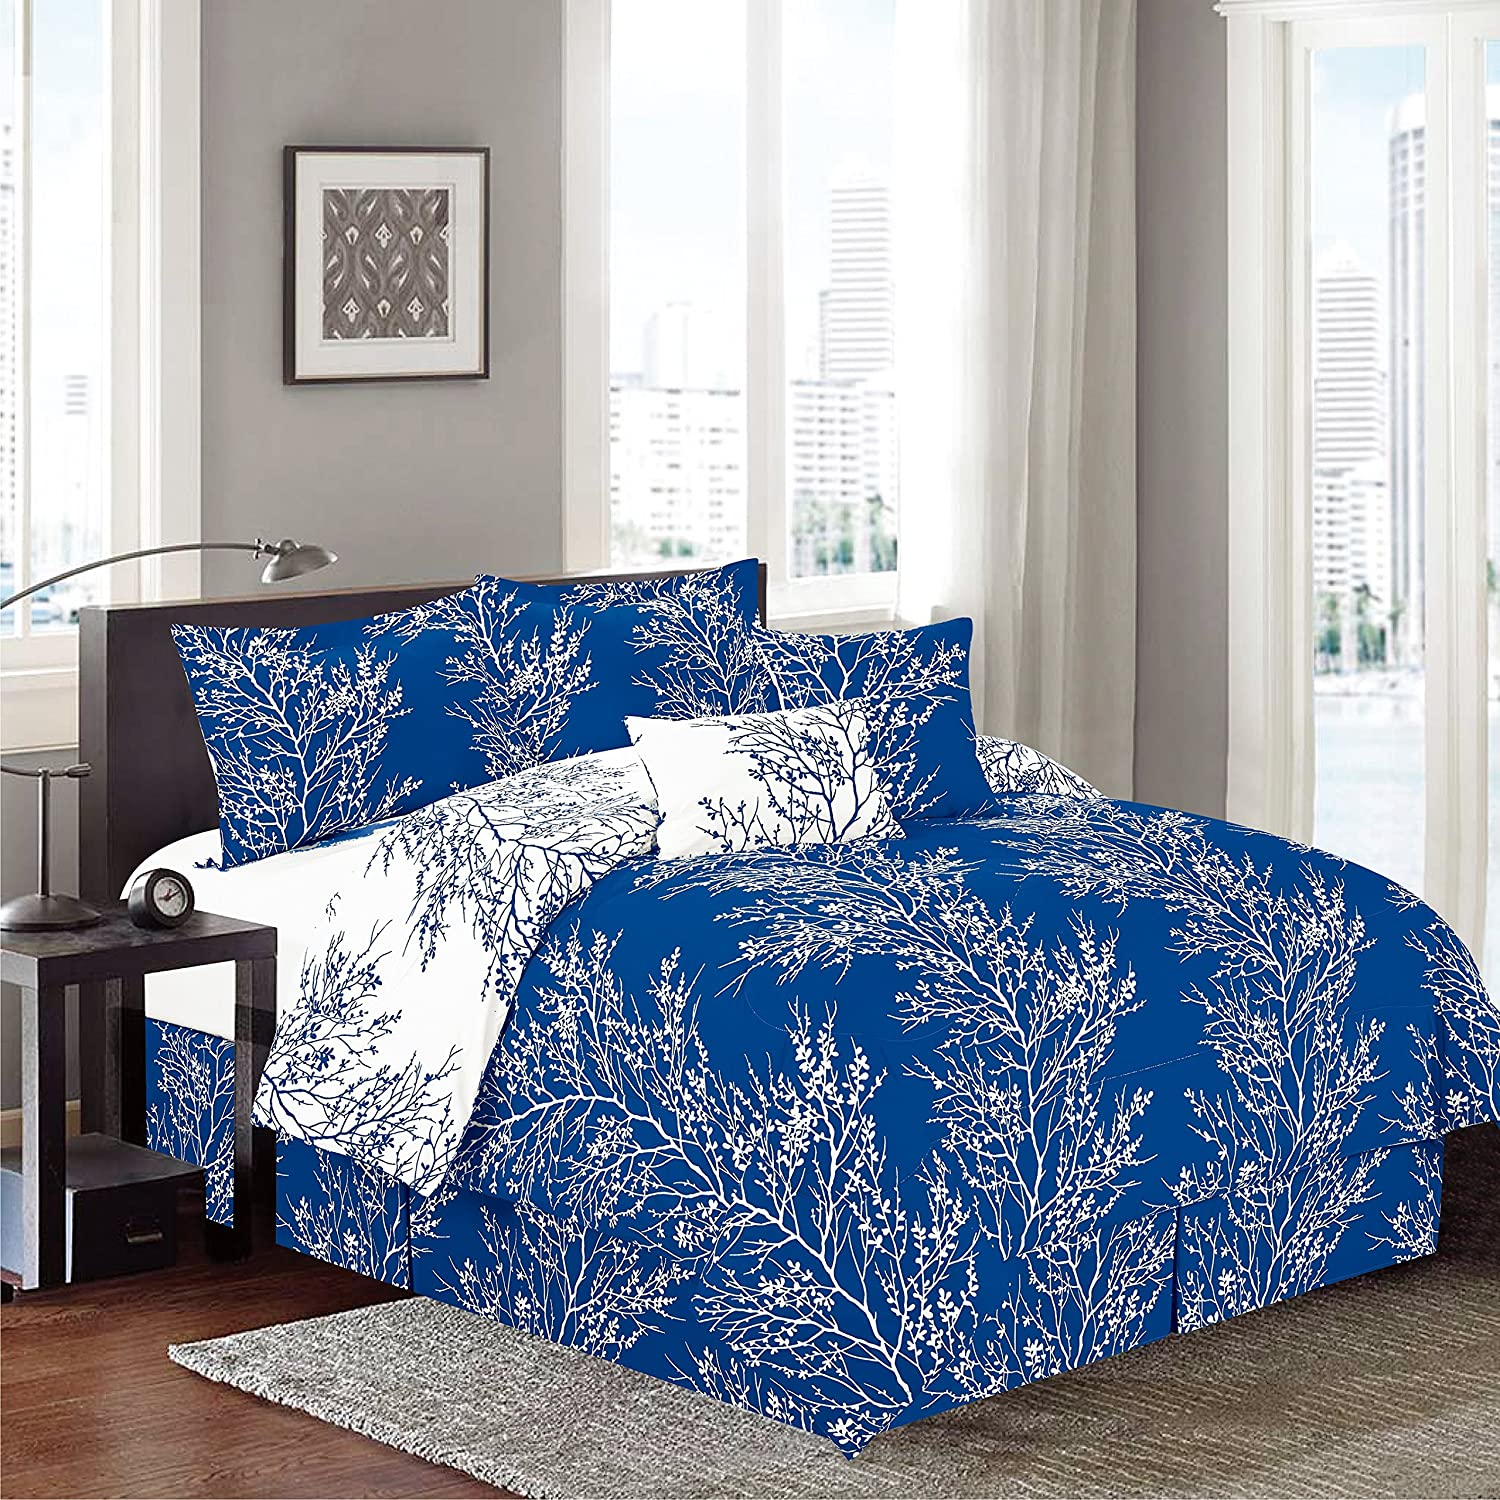 6 Piece Reversible Printed Royal Blue Branches Comforter set - Queen Size